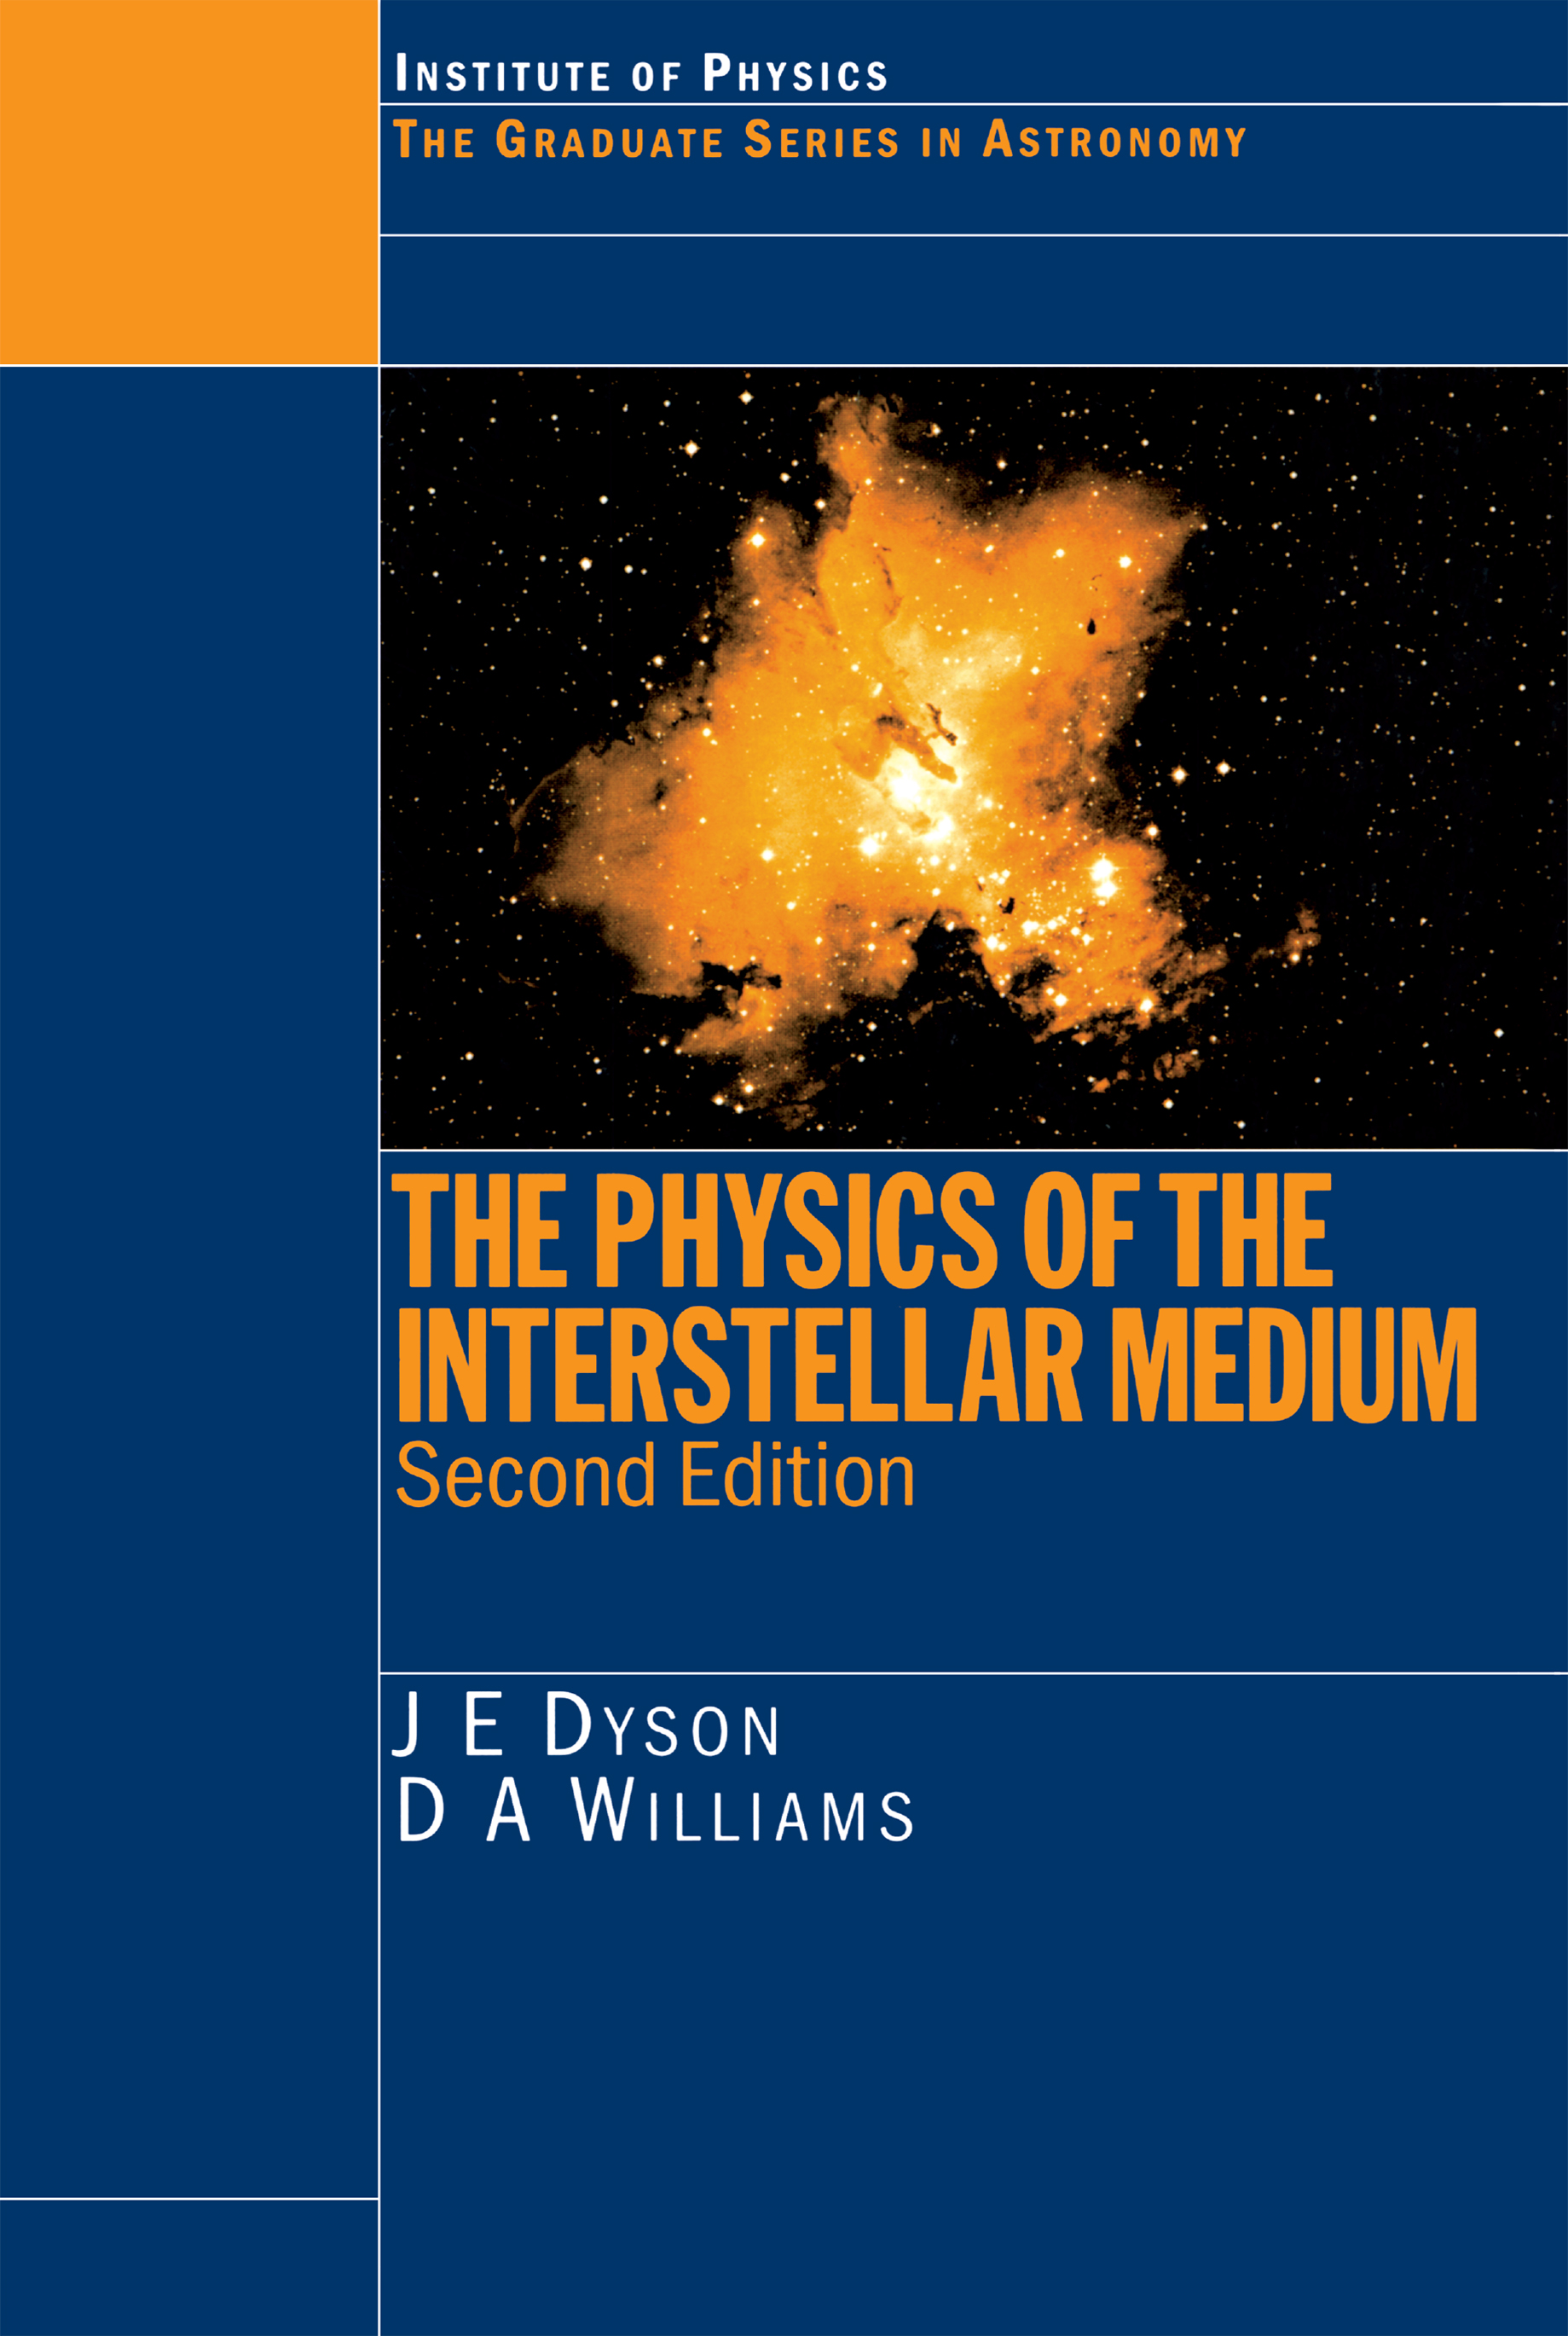 The Physics of the Interstellar Medium, Second Edition book cover